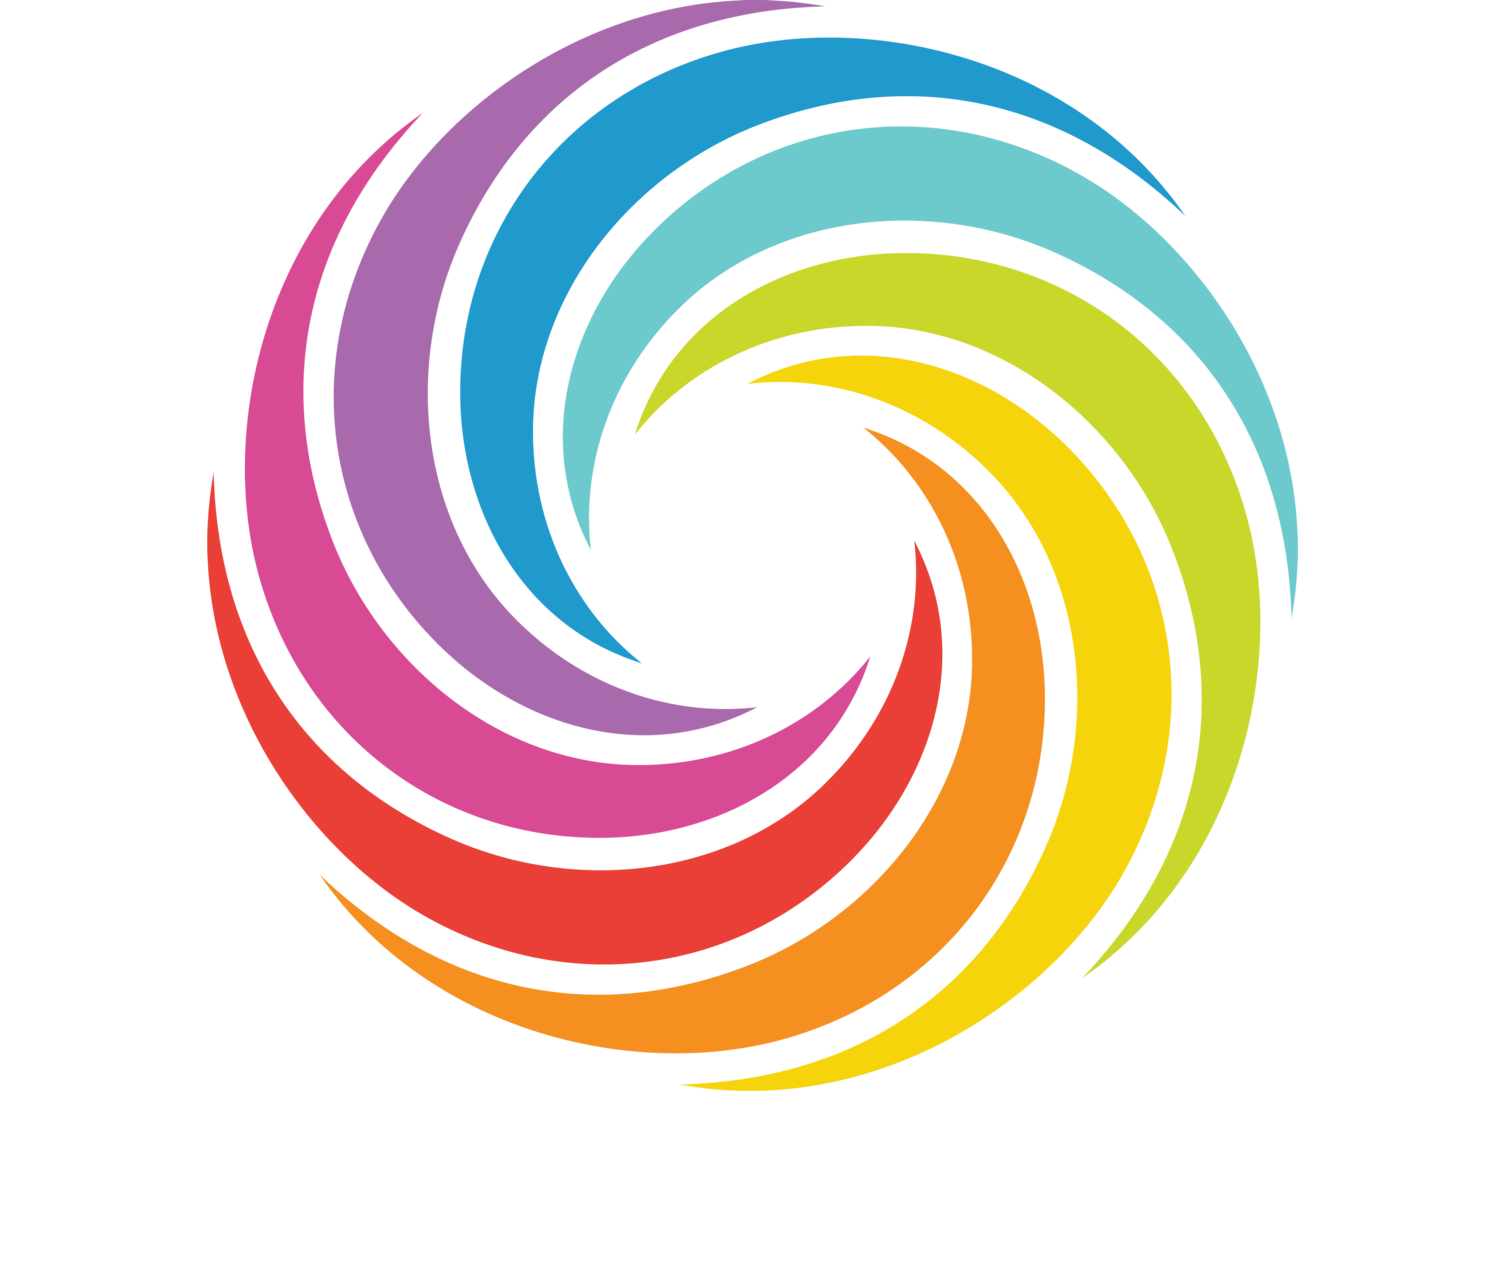 Original Rainbow Bagels & Bagel Art @ The Bagel Store, Brooklyn